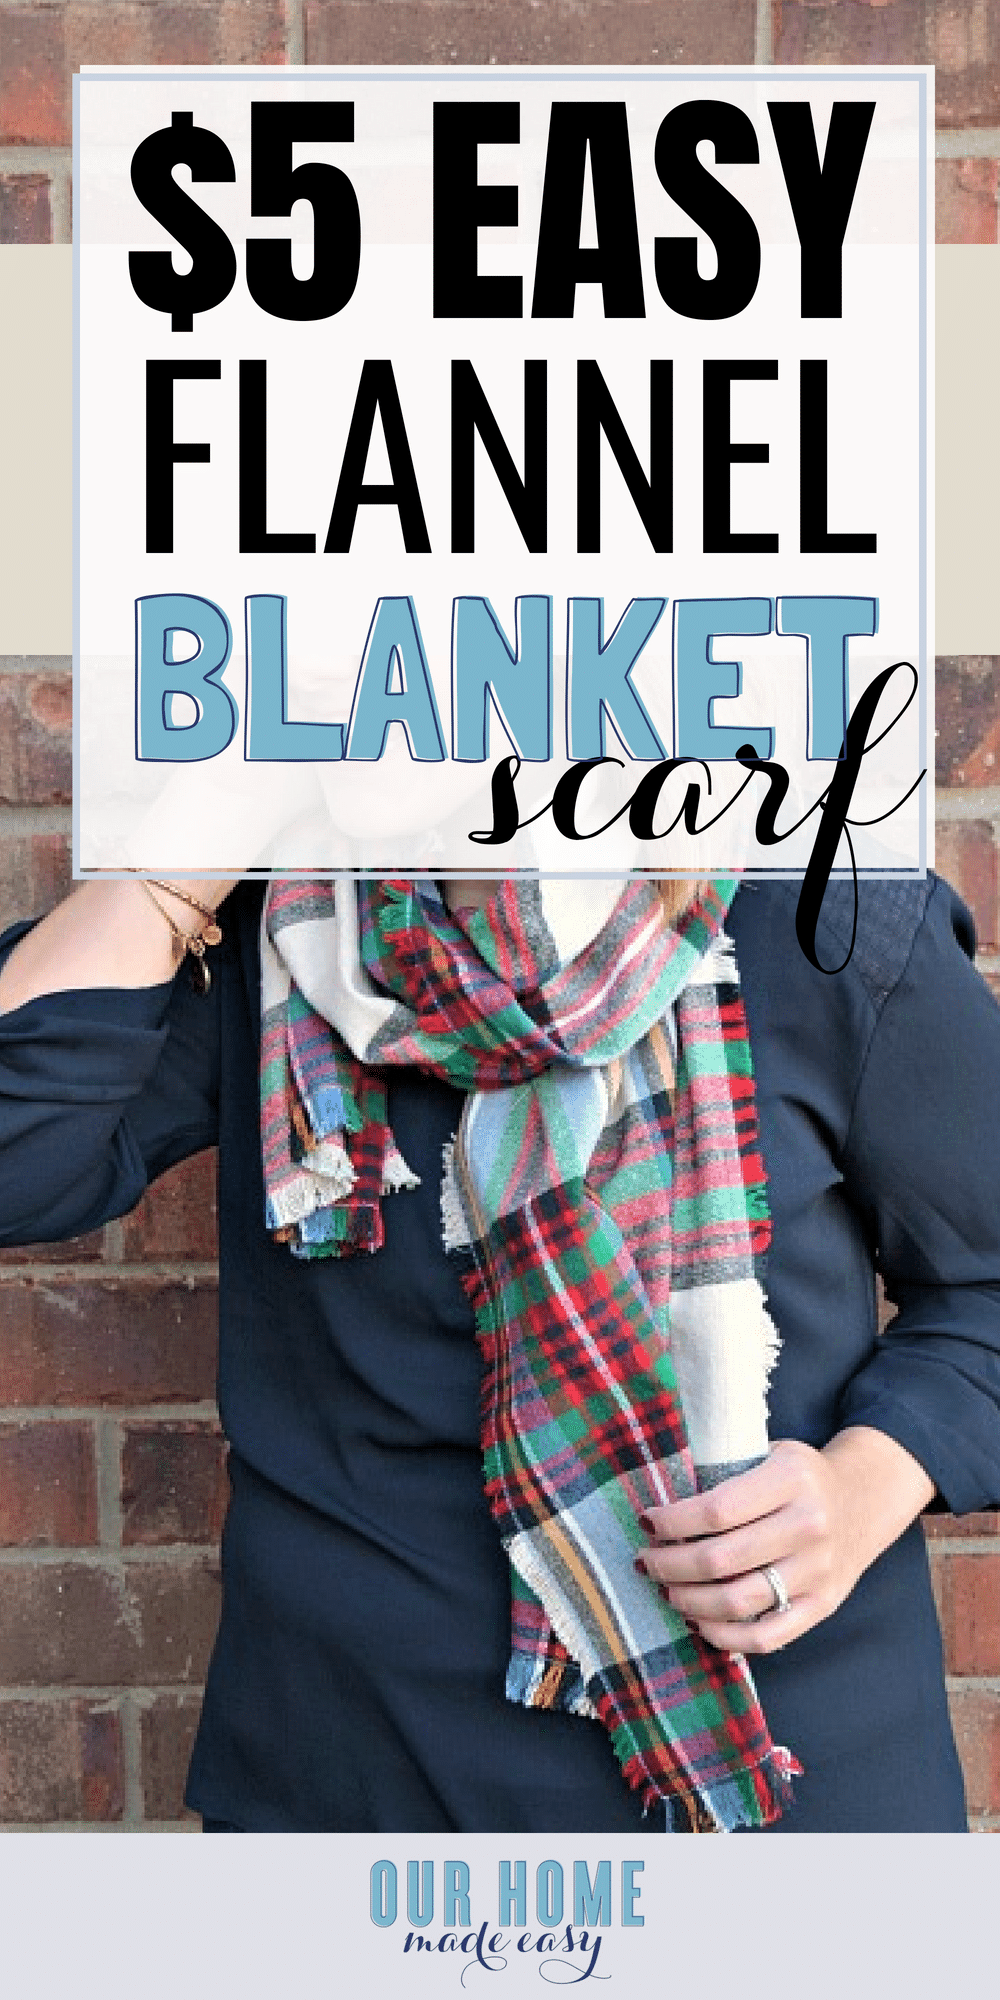 Make your own blanket flannel scarf for under $5! You can adjust the size & choose your favorite pattern. Click to see how easy it is to make! #fall #clothing #scarf #flannel #sewing